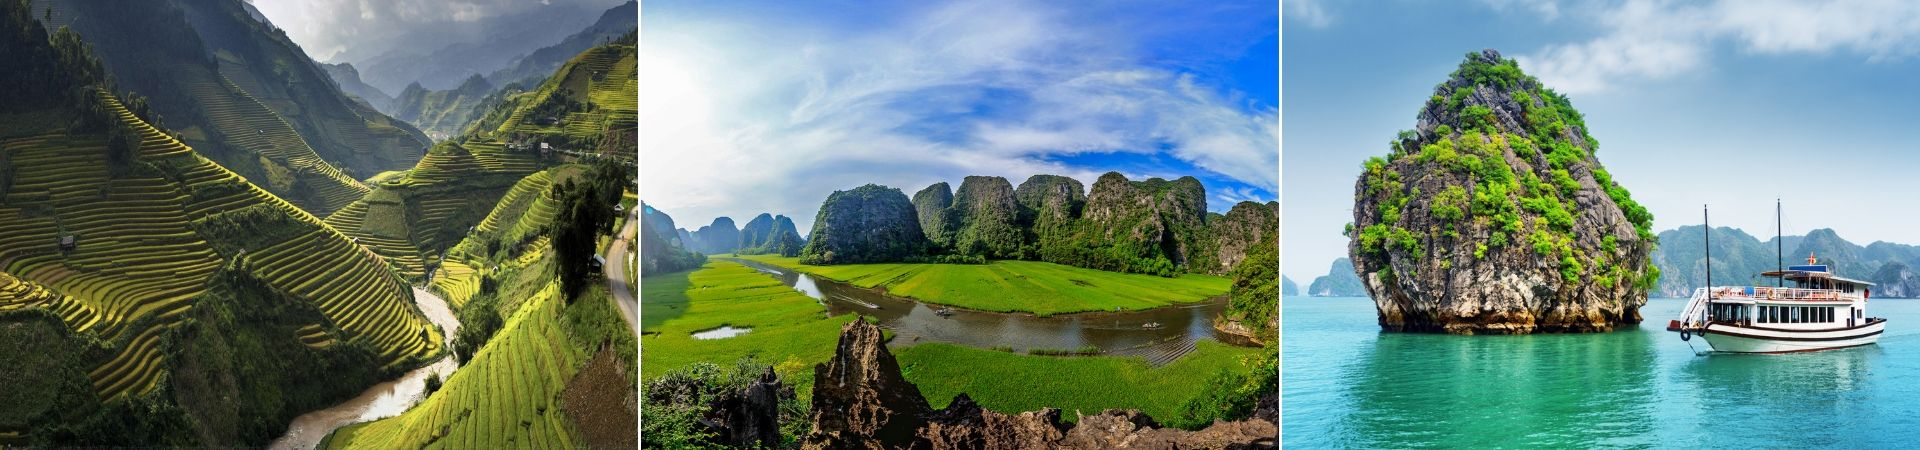 Vietnam Authentische Reise